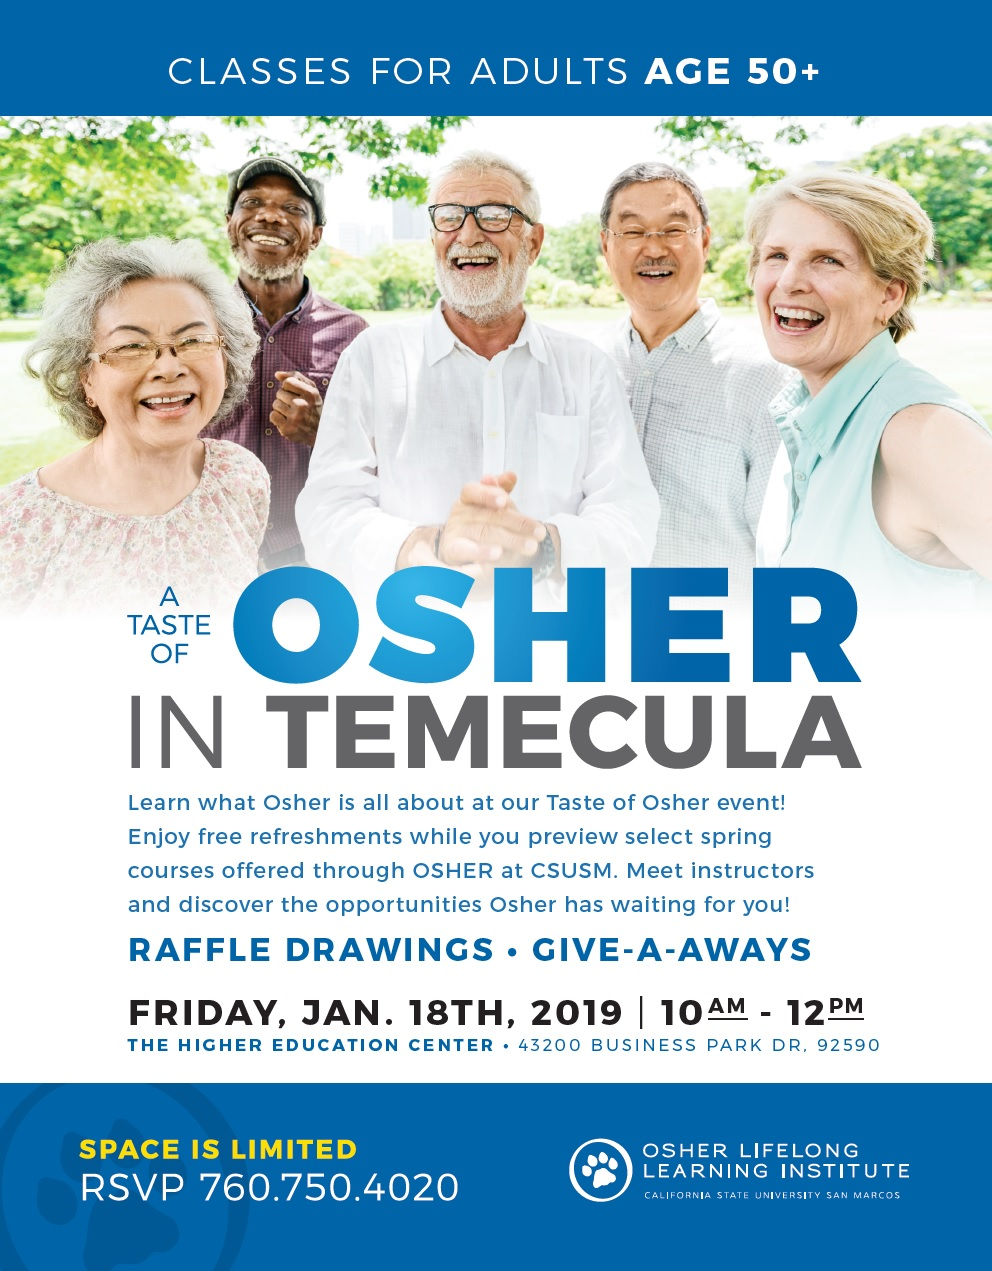 Taste of Osher in Temecula @ Higher Education Center